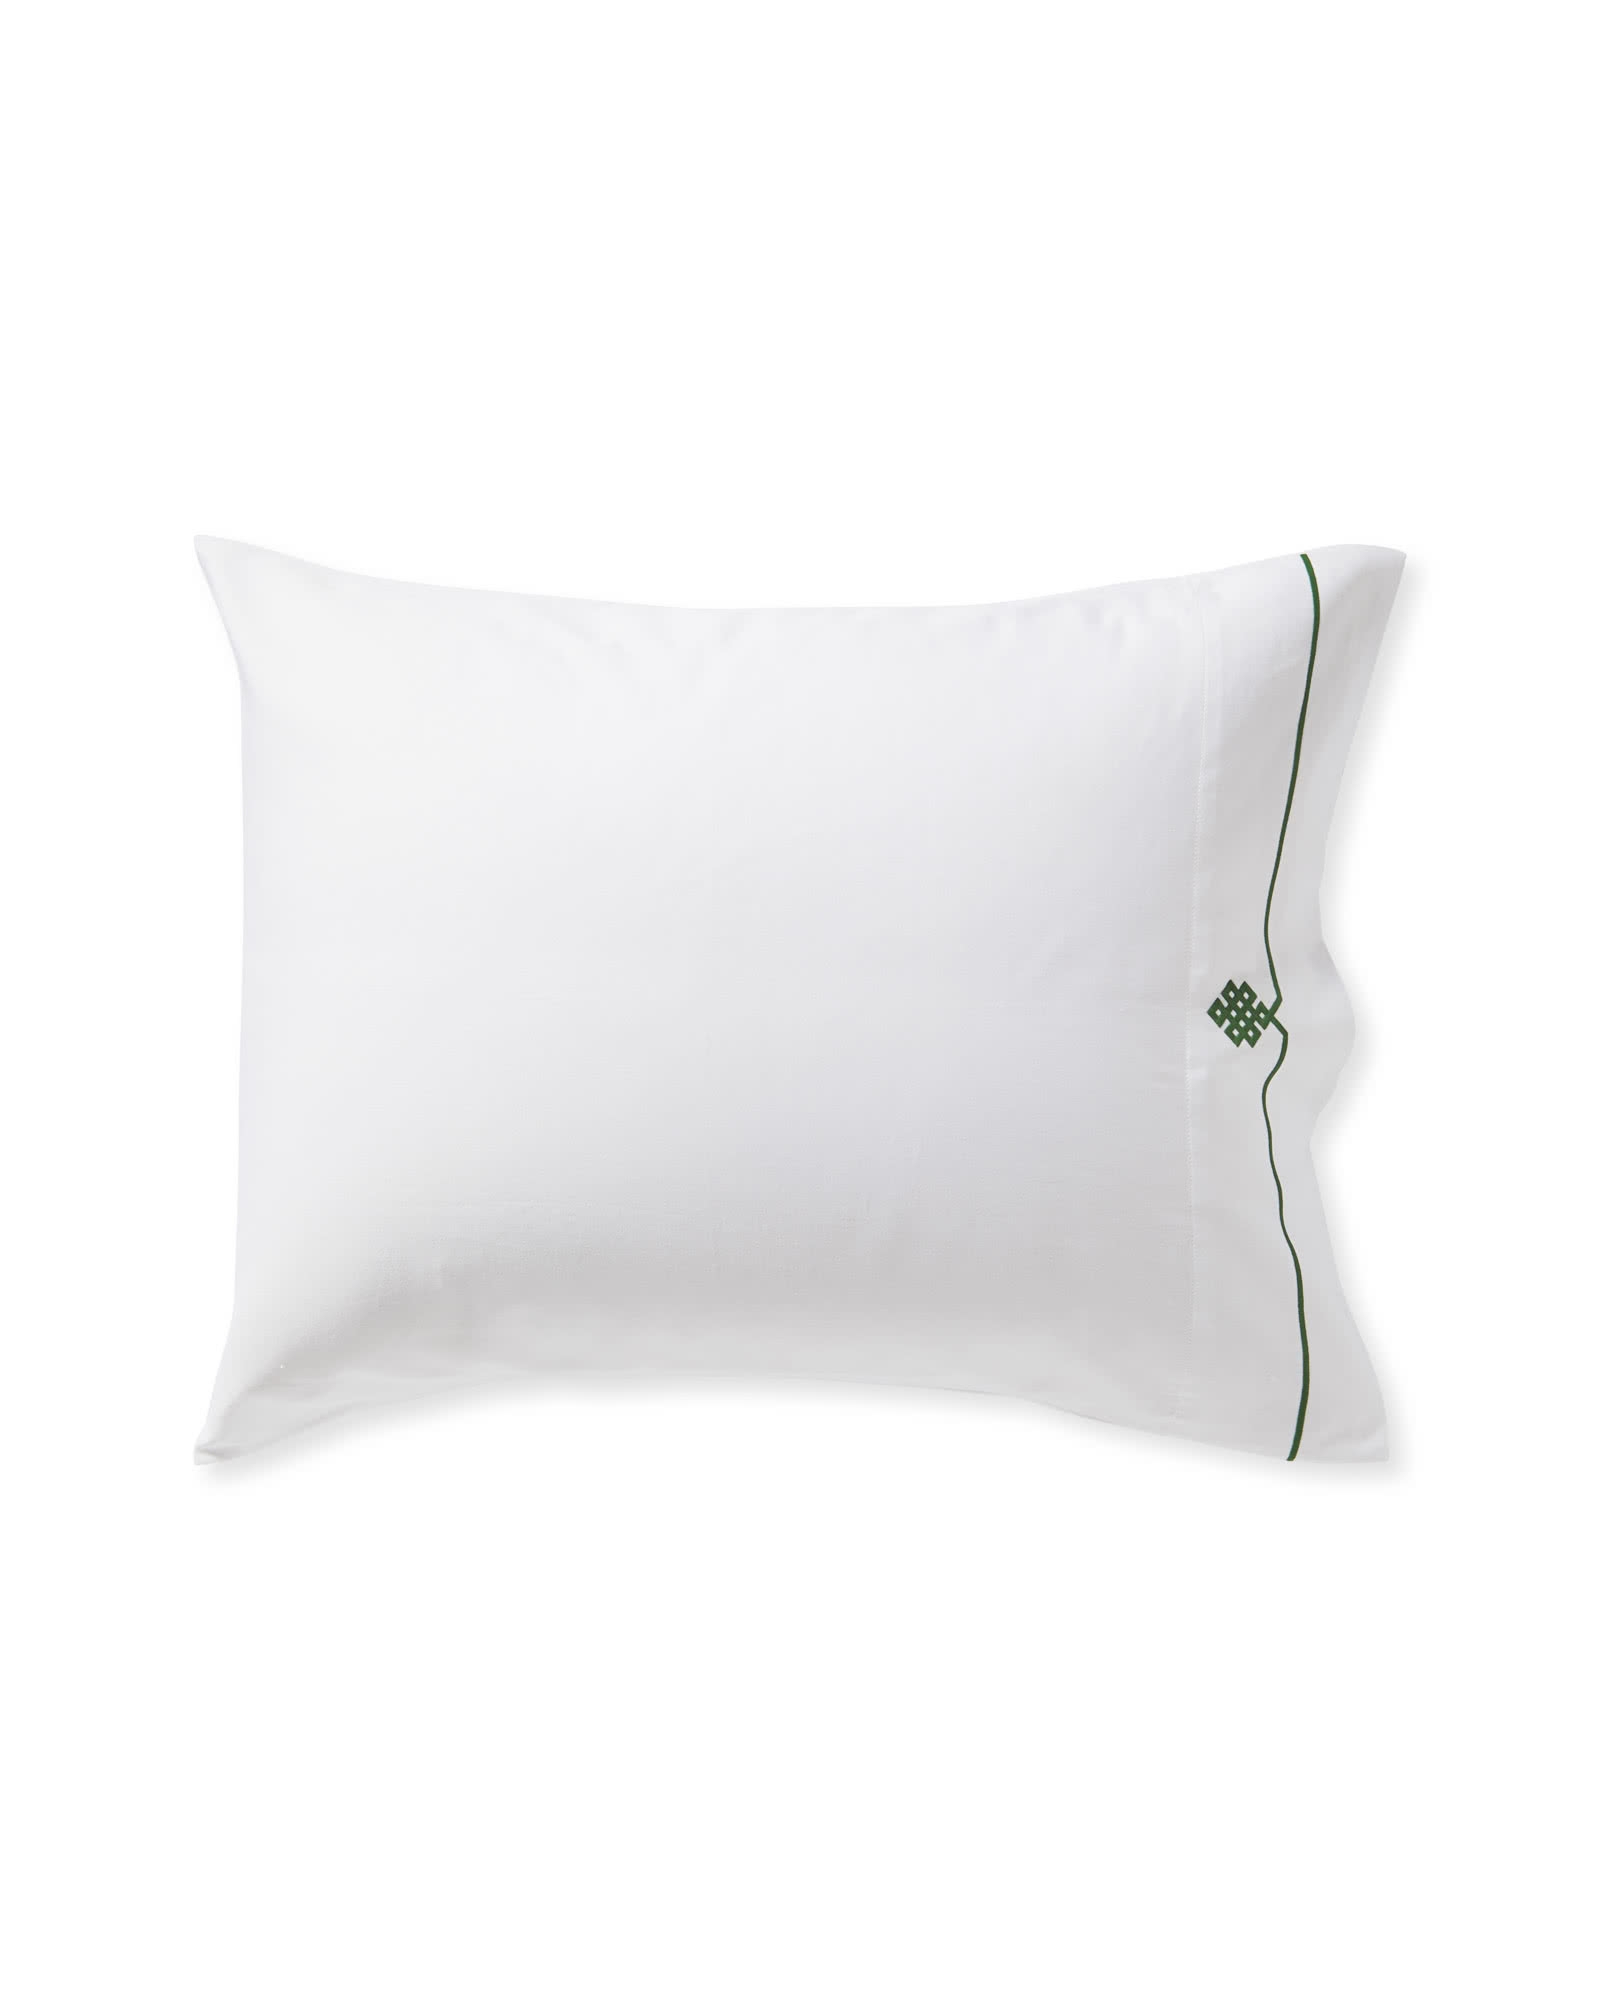 Soho Pillowcases (Extra Set of 2), Moss